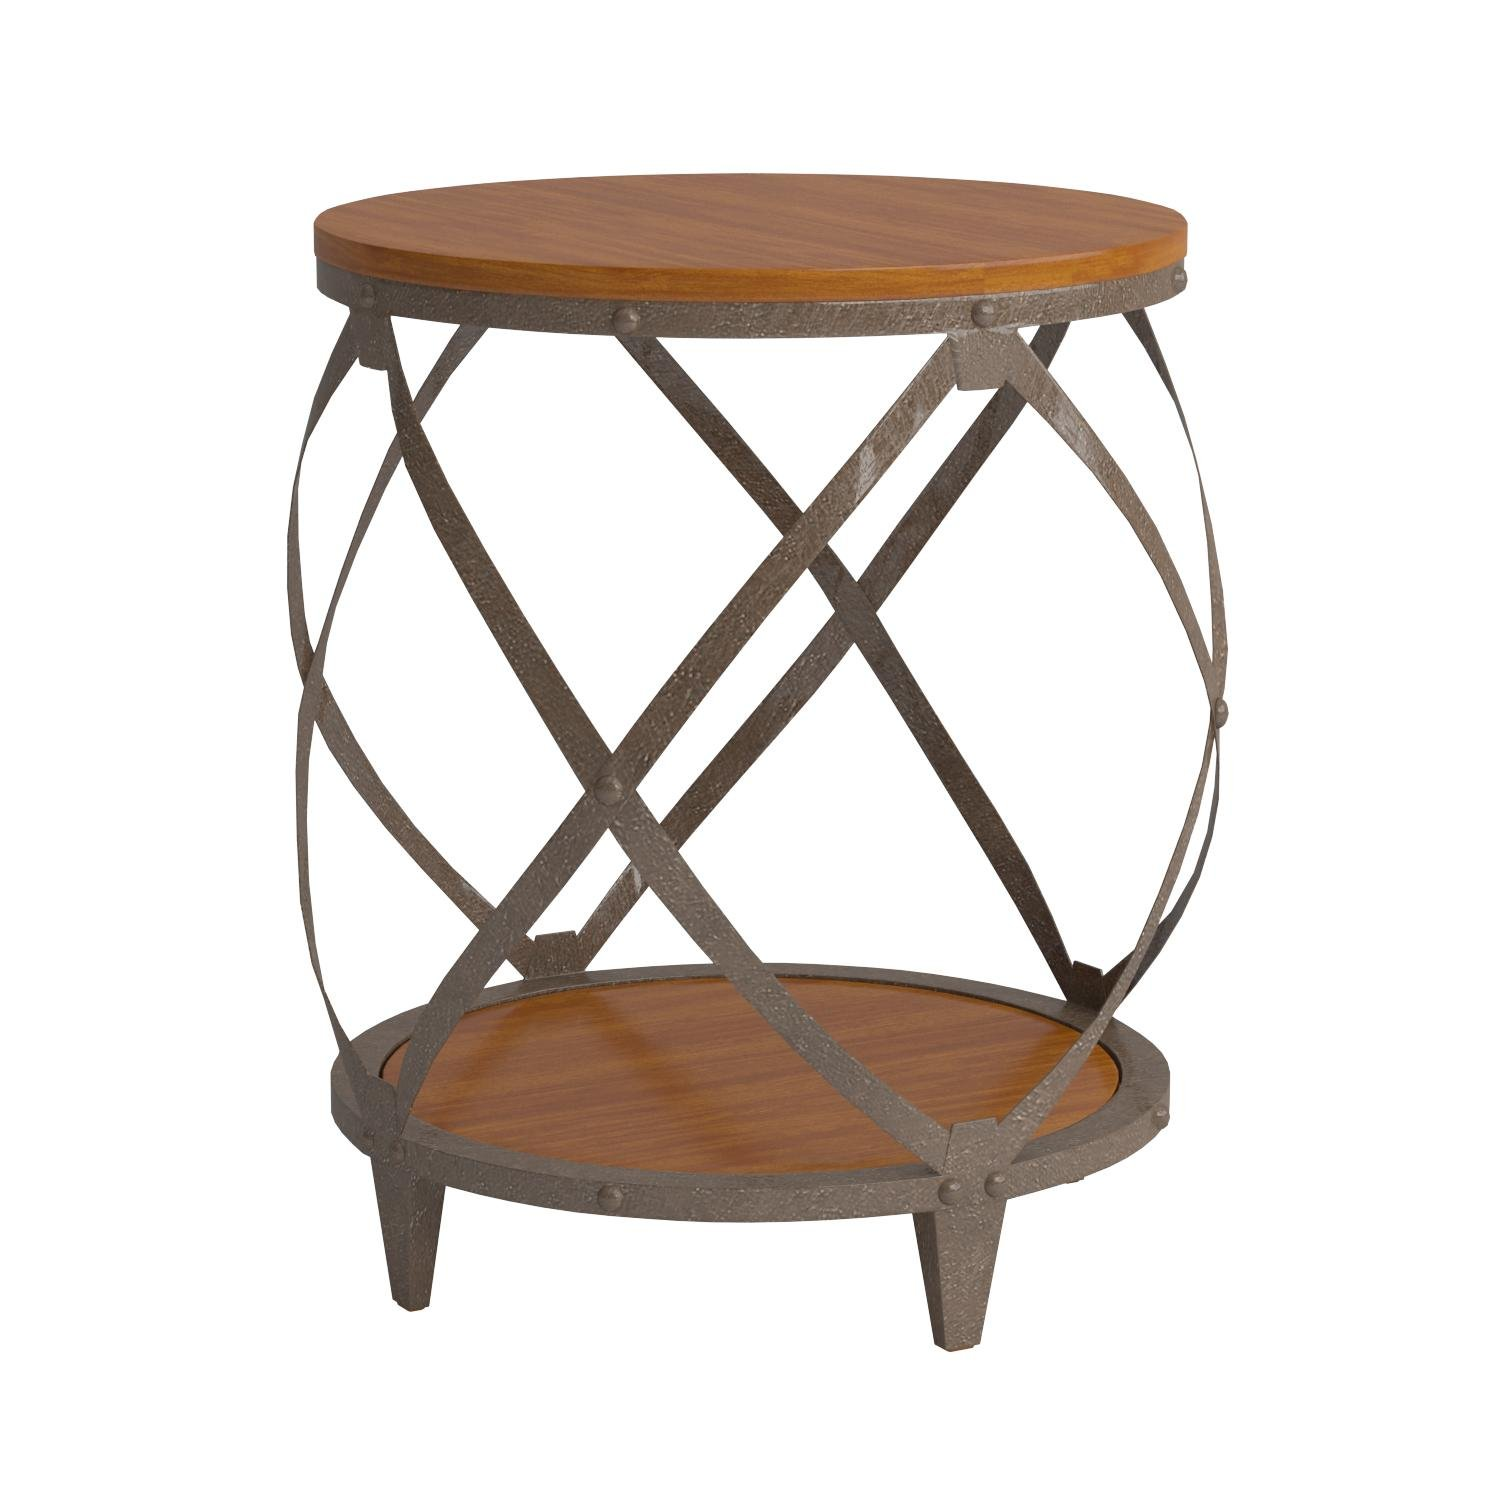 metal accent table with drum shape brown vjfaclgl shaped west elm parsons coffee stackable outdoor tables round dining room and chairs kitchen lamps garden furniture bookcase